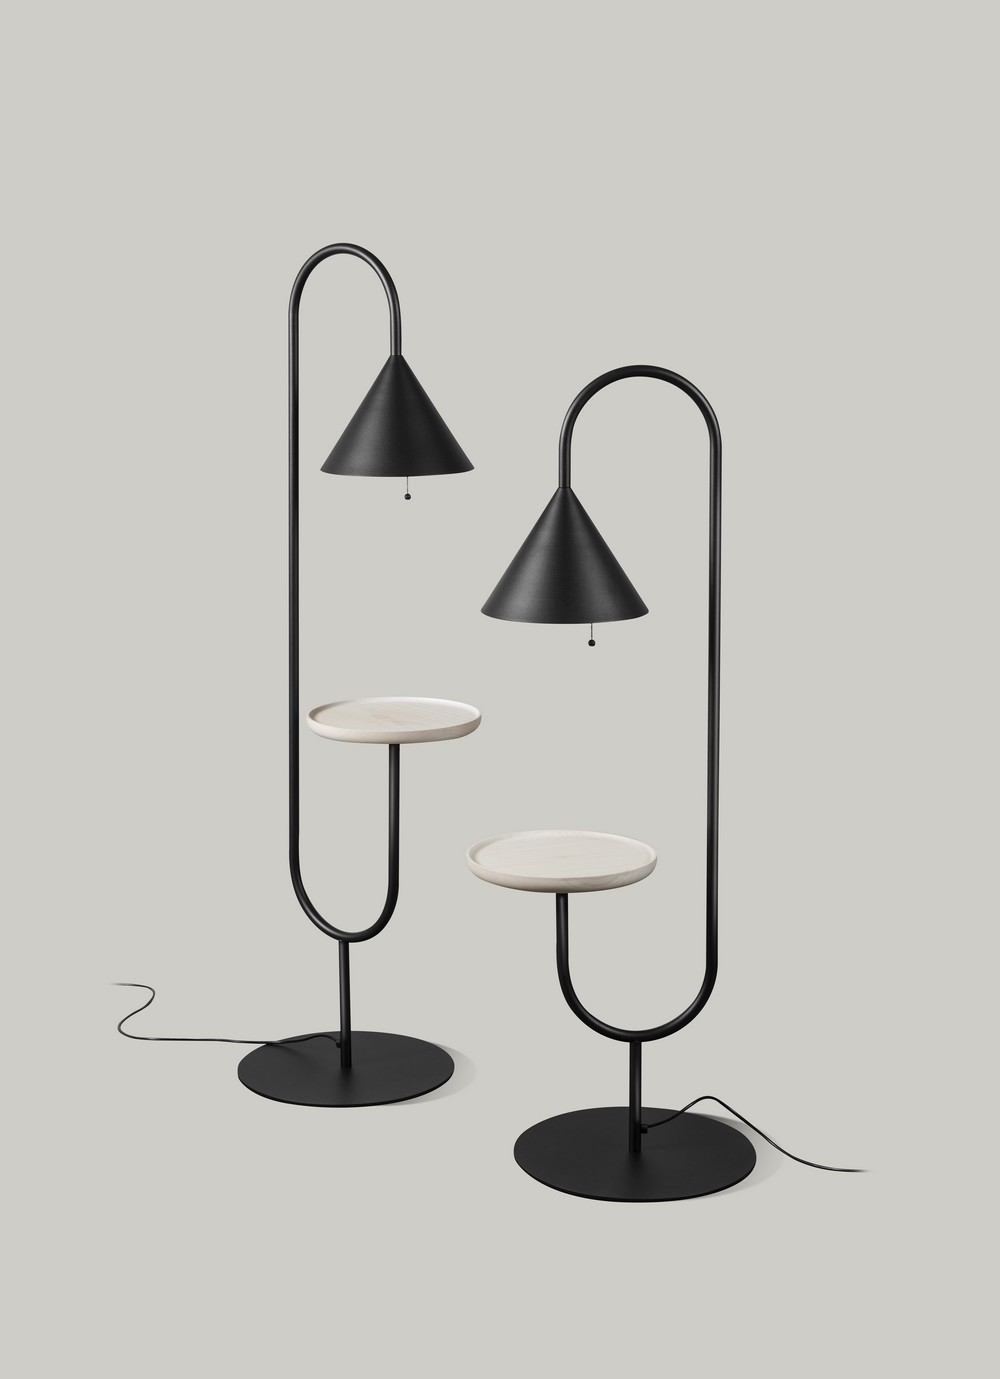 miniforms Miniforms has introduced a whole new collection: have a look! Ozz Lamp